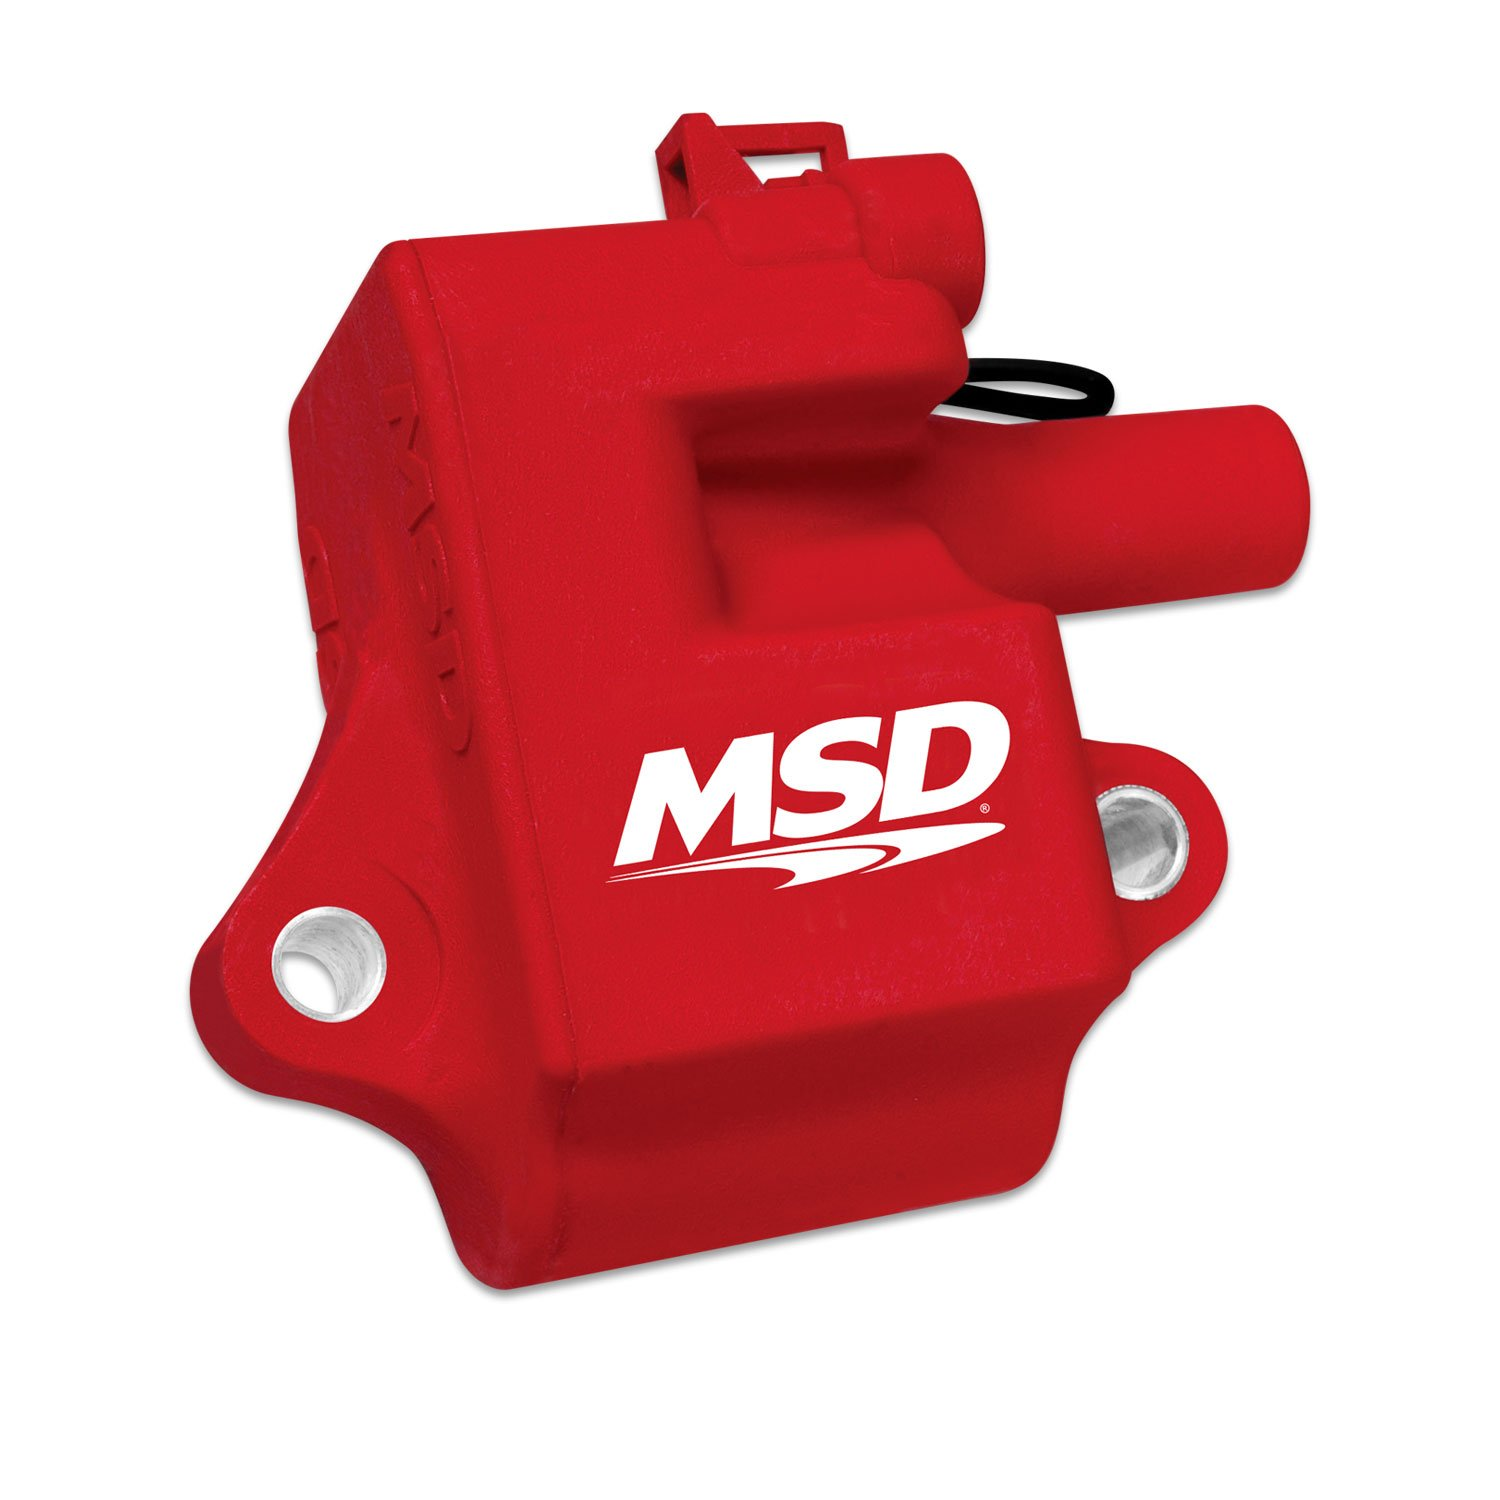 Groovy Msd 8285 Pro Power Single Coil For Gm Ls1 Ls6 Engines Wiring Cloud Hisonuggs Outletorg